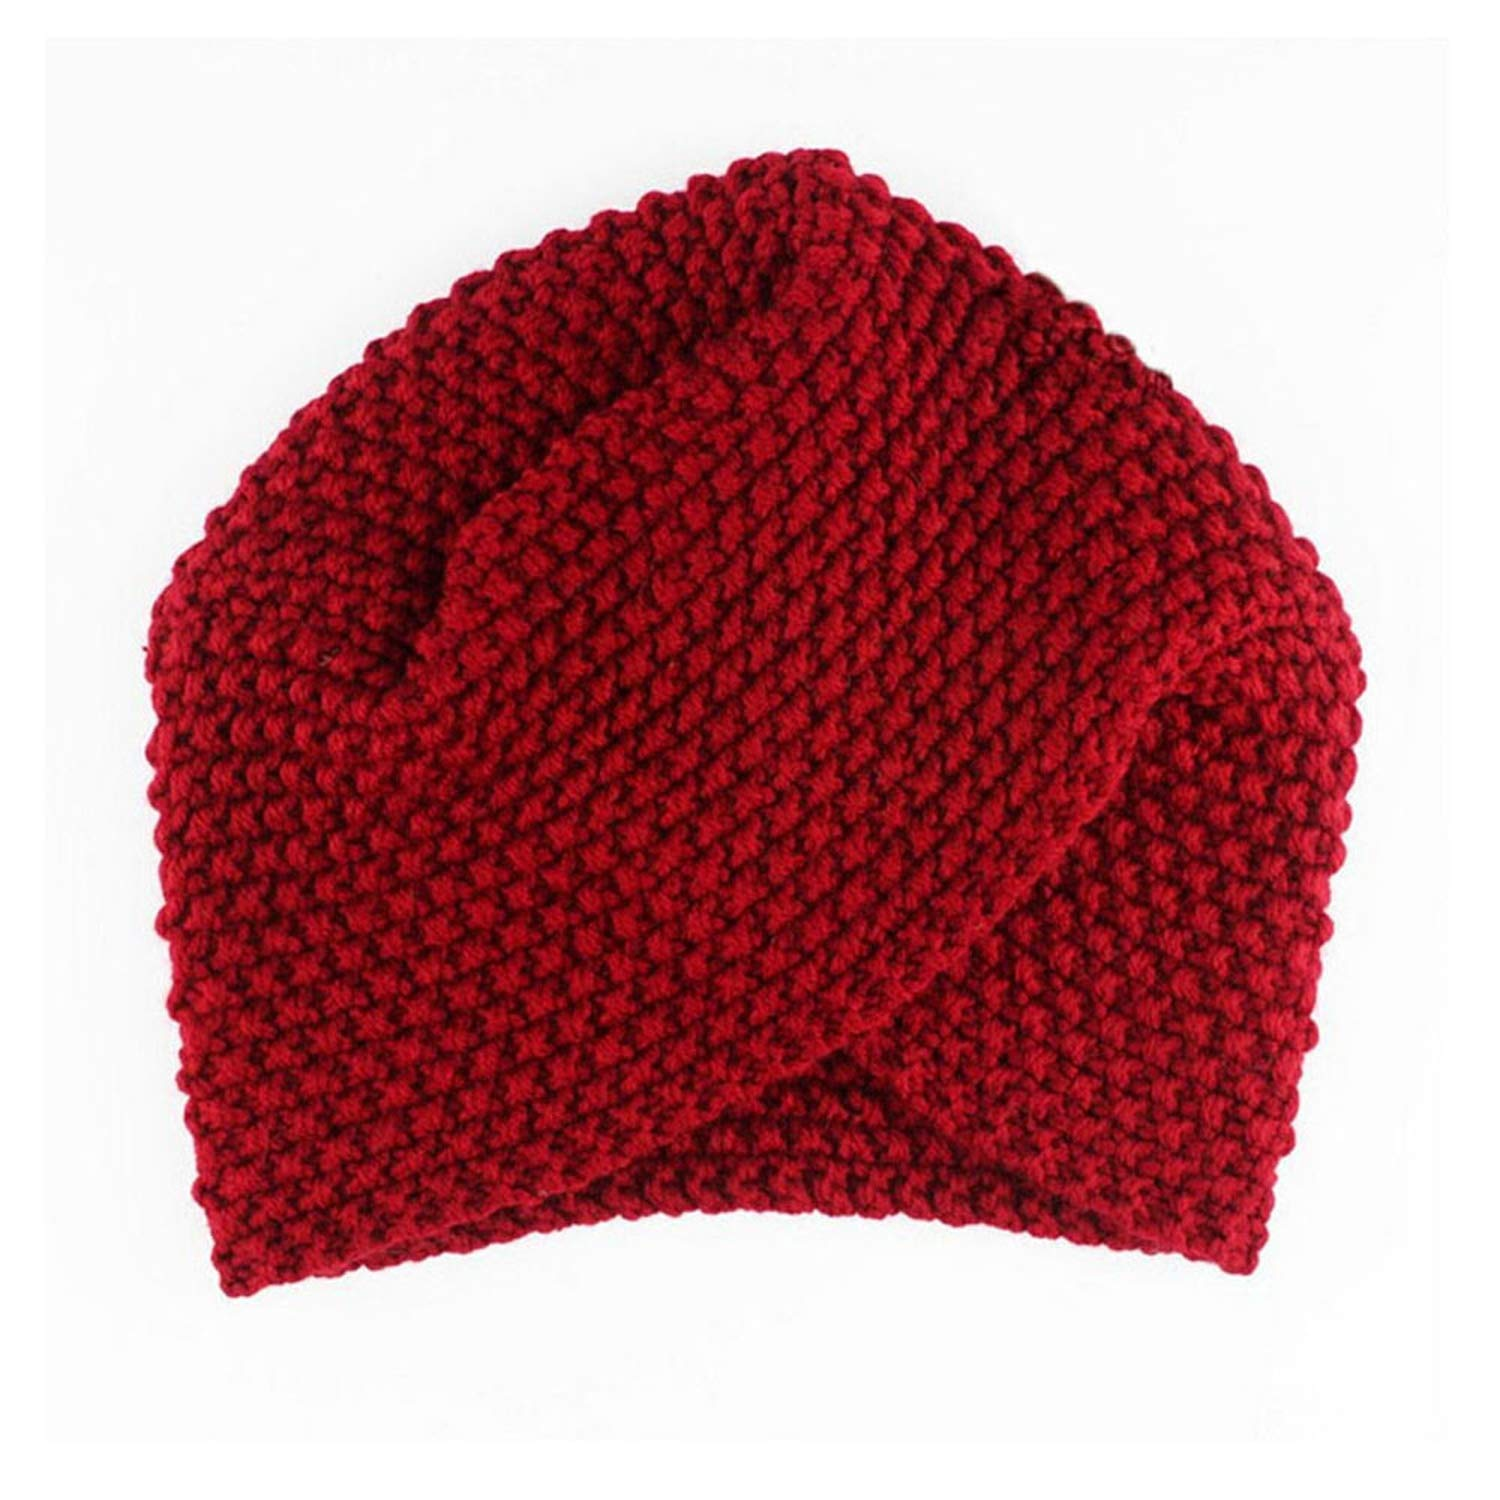 Fashion Women Warm Winter Knitted Hat Cap Female Knitted hat Gorras Hombre Casual Acrylic Female Casquette